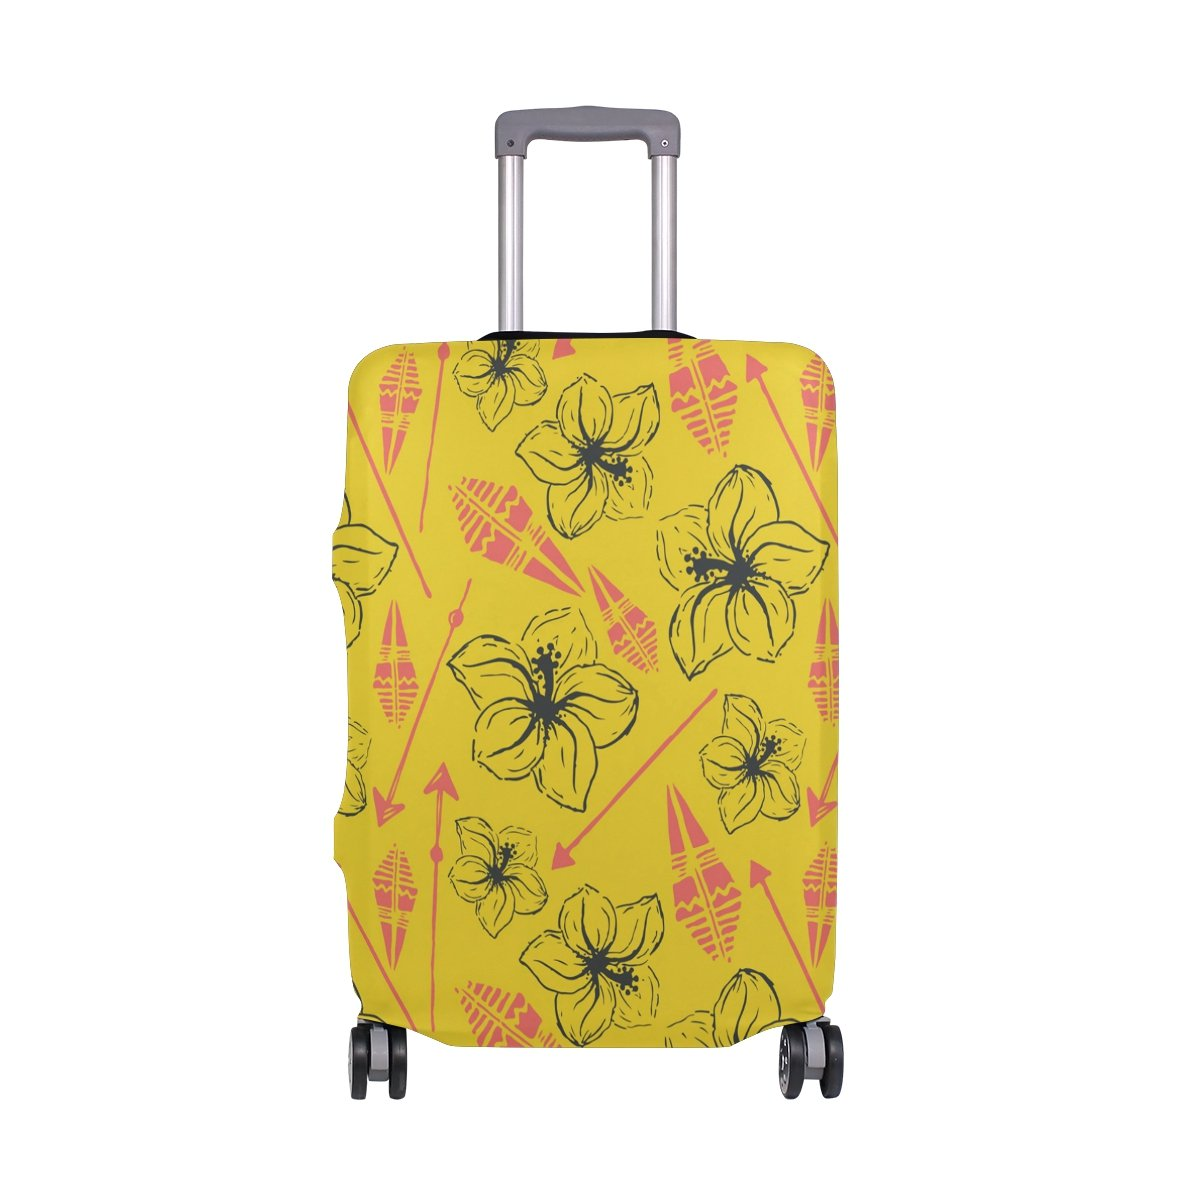 LORVIES Universal Summer Hawaiian Flower Print Travel Luggage Protective Covers Washable Spandex Baggage Suitcase Cover - Fits 18-32 Inch